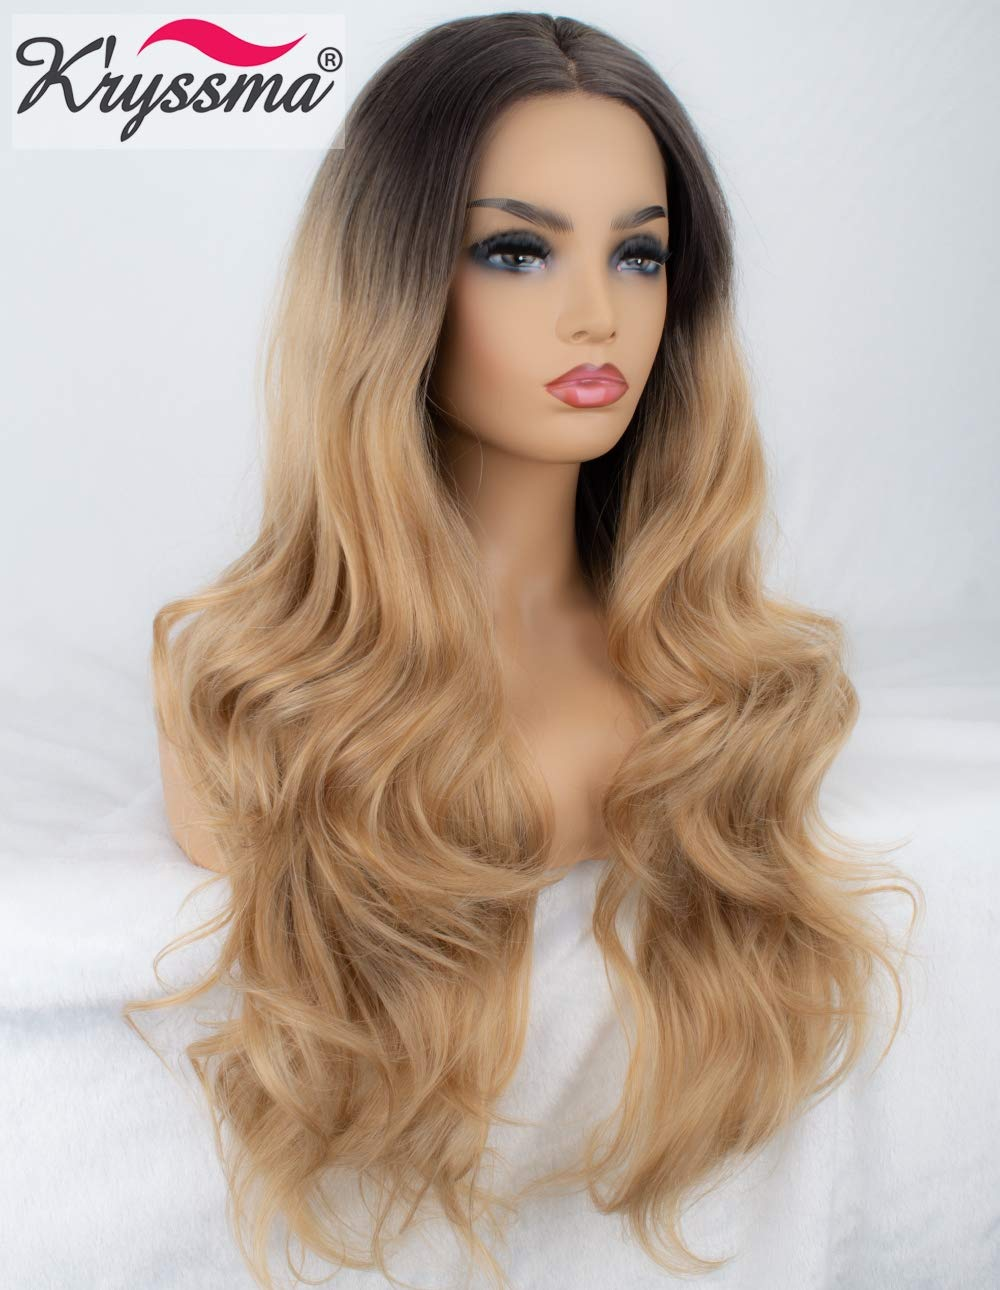 bb50fea9d2cf95 Amazon.com : K'ryssma Ombre Blonde Lace Front Wigs Dark Roots Brown to  Blonde Ombre Synthetic Wigs For Women Natural Looking Long Wavy Wig Heat  Resistant 24 ...